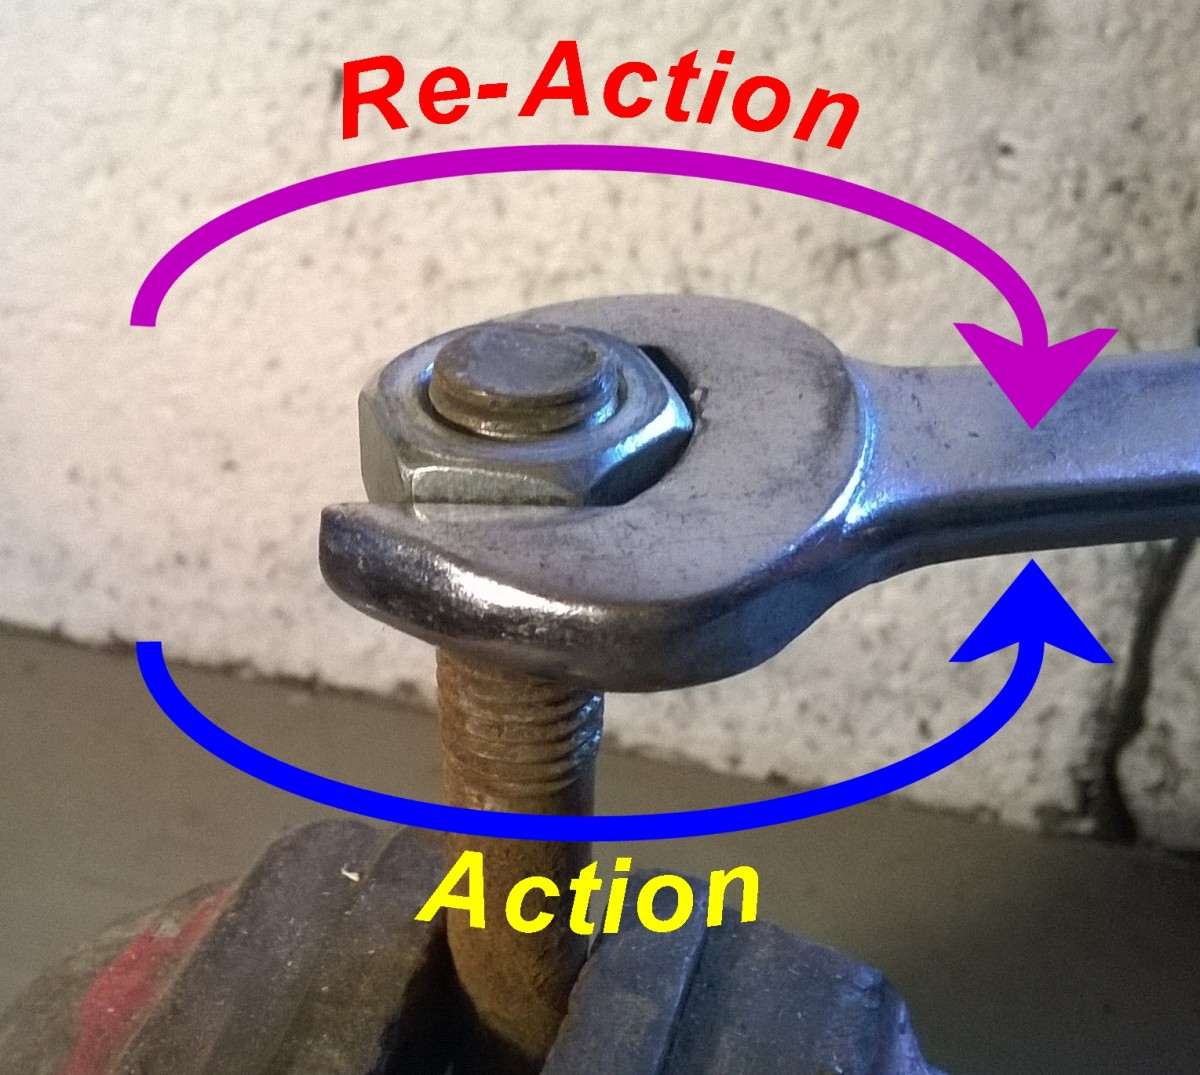 Undoing a nut. The limiting value of friction must be overcome to release the nut